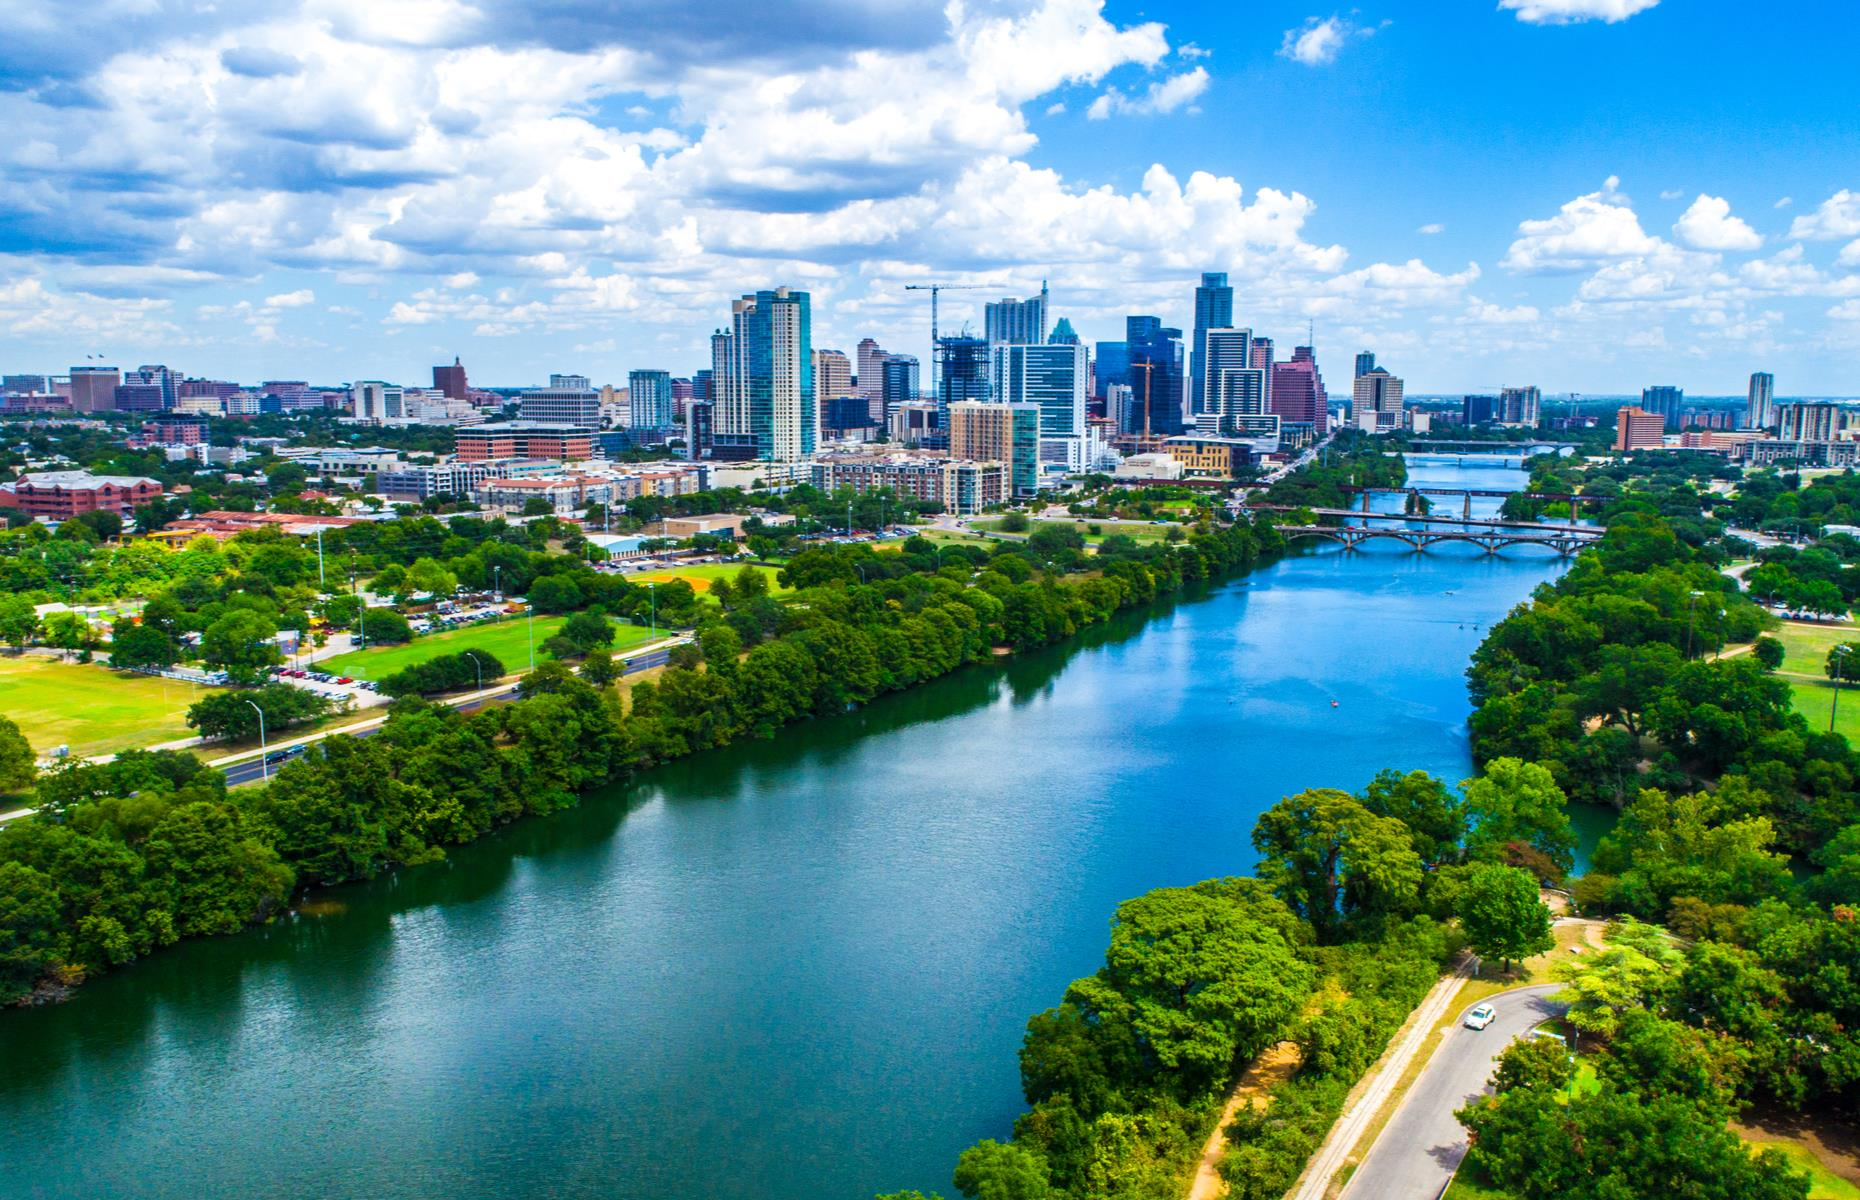 Slide 10 of 31: Although more famous for its musical connections, Austin has a surprising amount of green spaces – and blue, for that matter. Lady Bird Lake is actually a reservoir whose skinny shape makes it look more like a river.